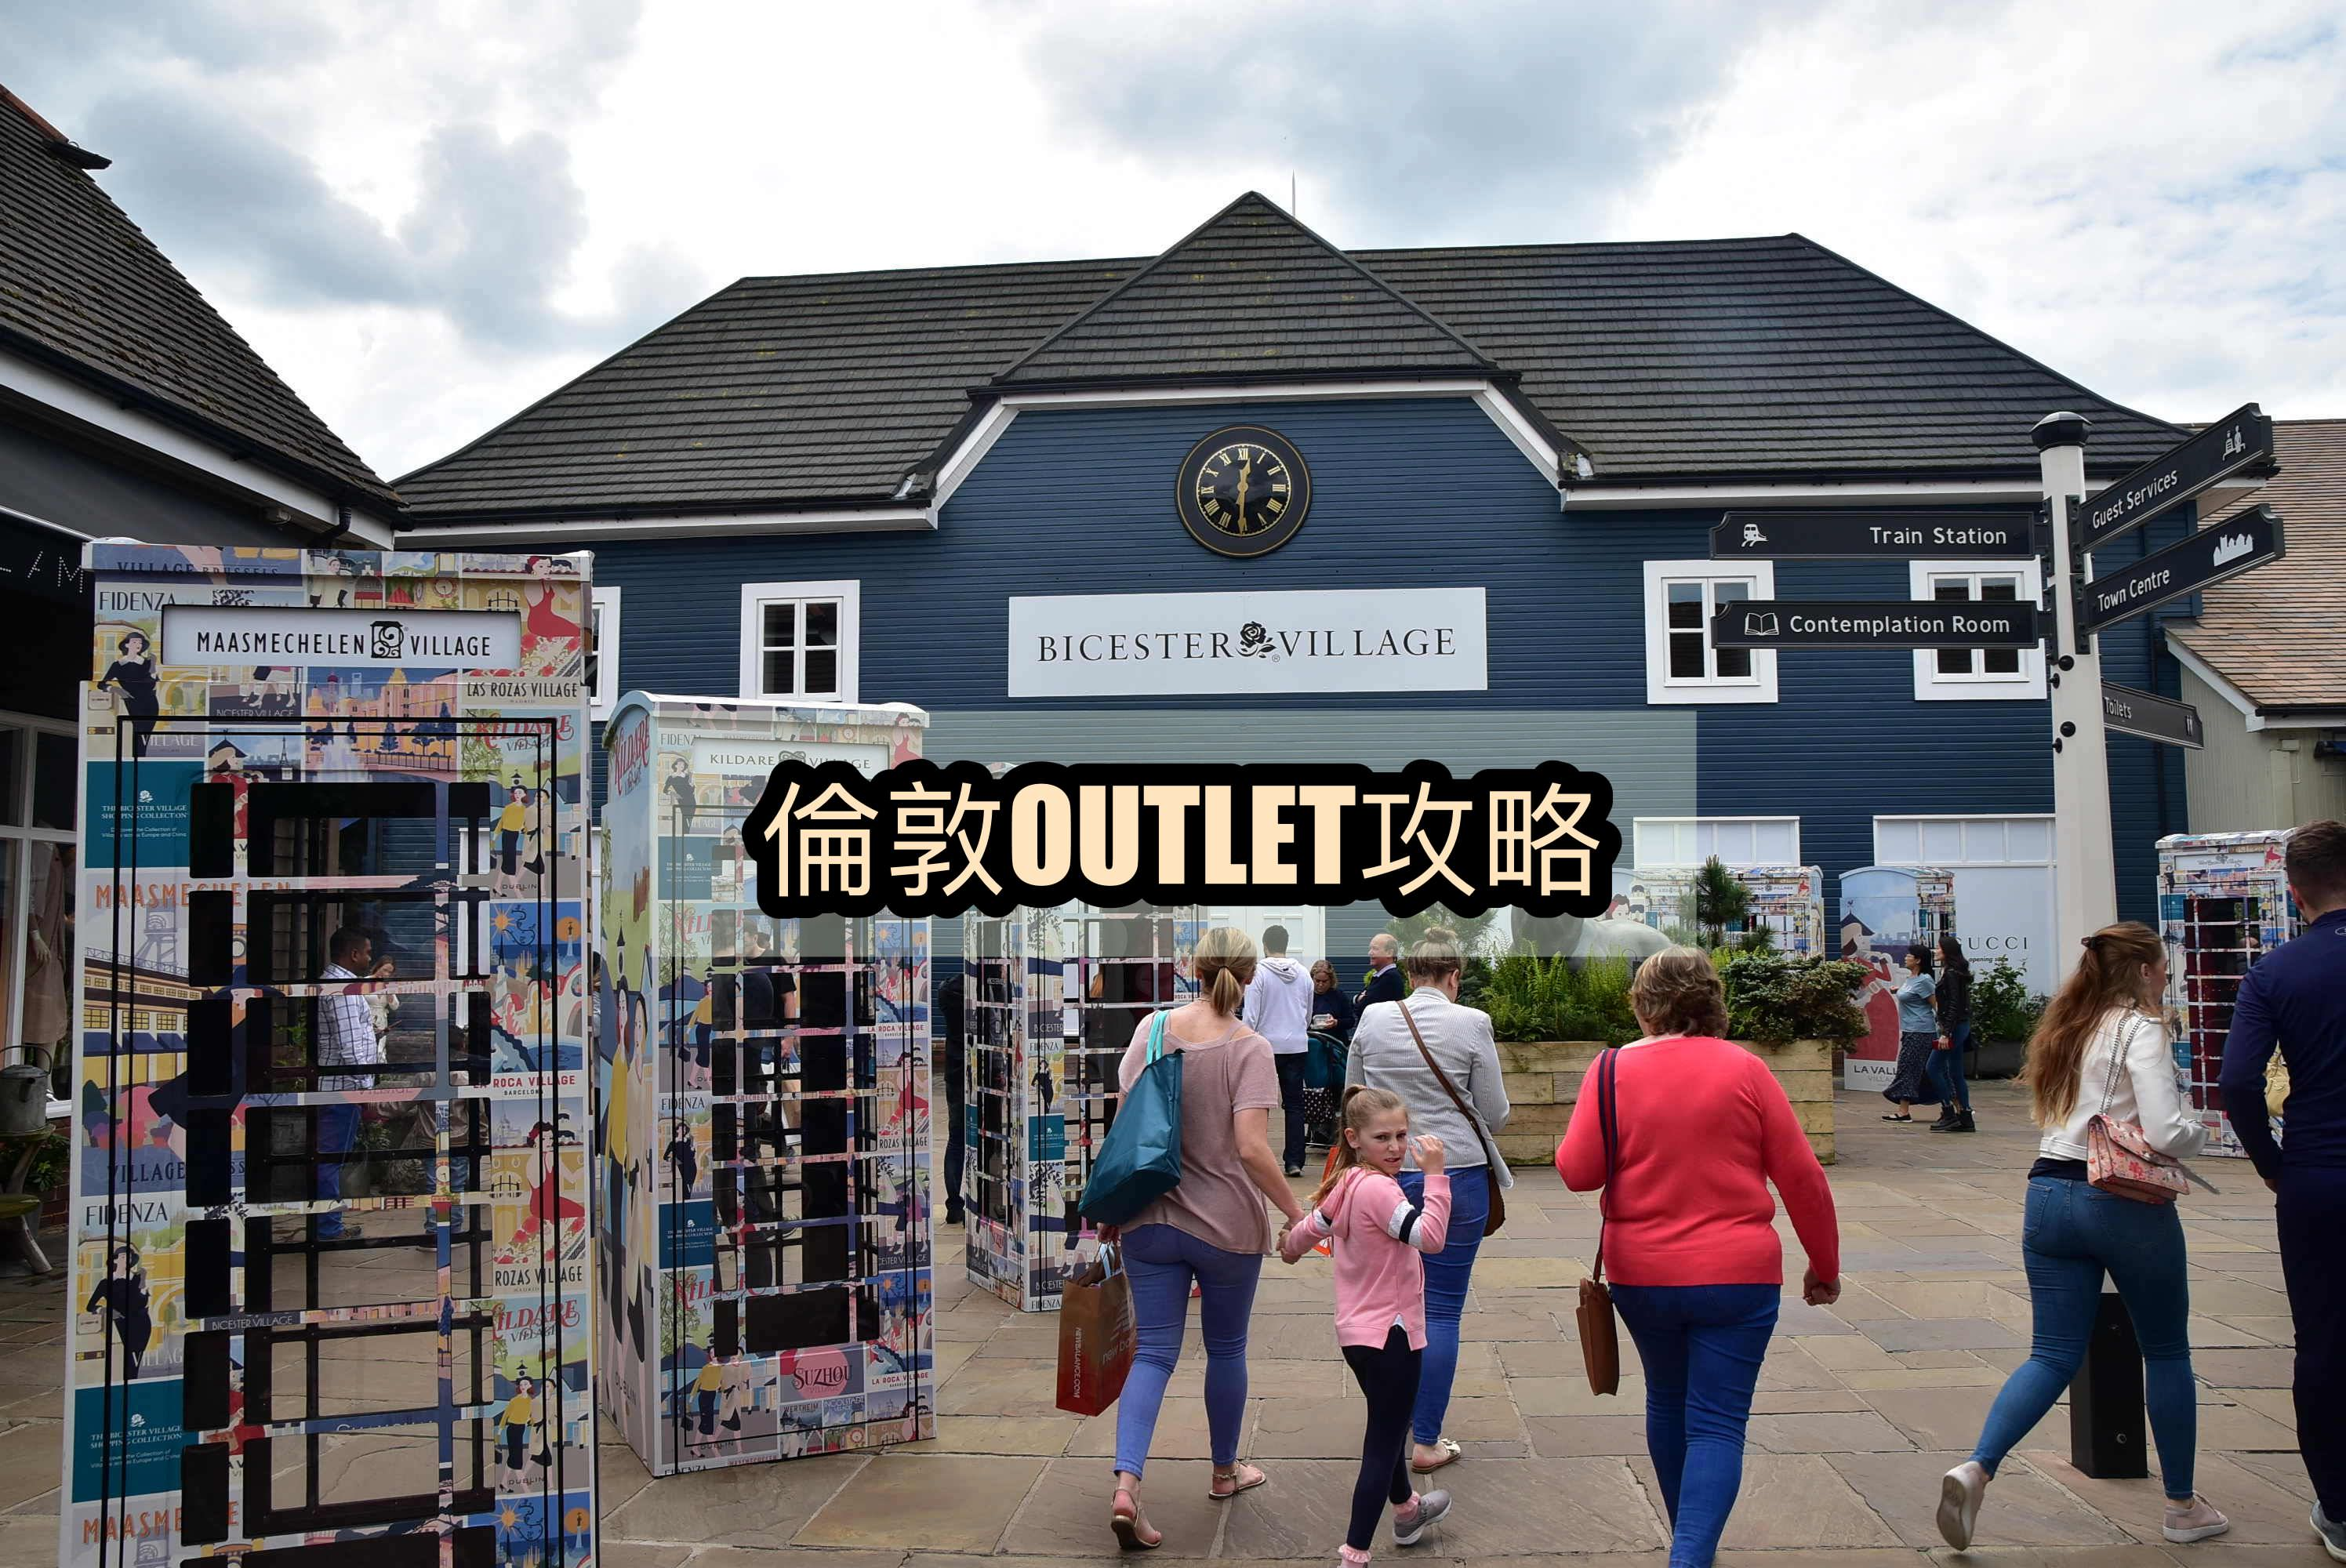 倫敦OUTLET,BICESTER VILLAGE OUTLET,BICESTER VILLAGE,OUTLET交通,OUTLET退稅,OUTLET倫敦必買 @Nash,神之領域